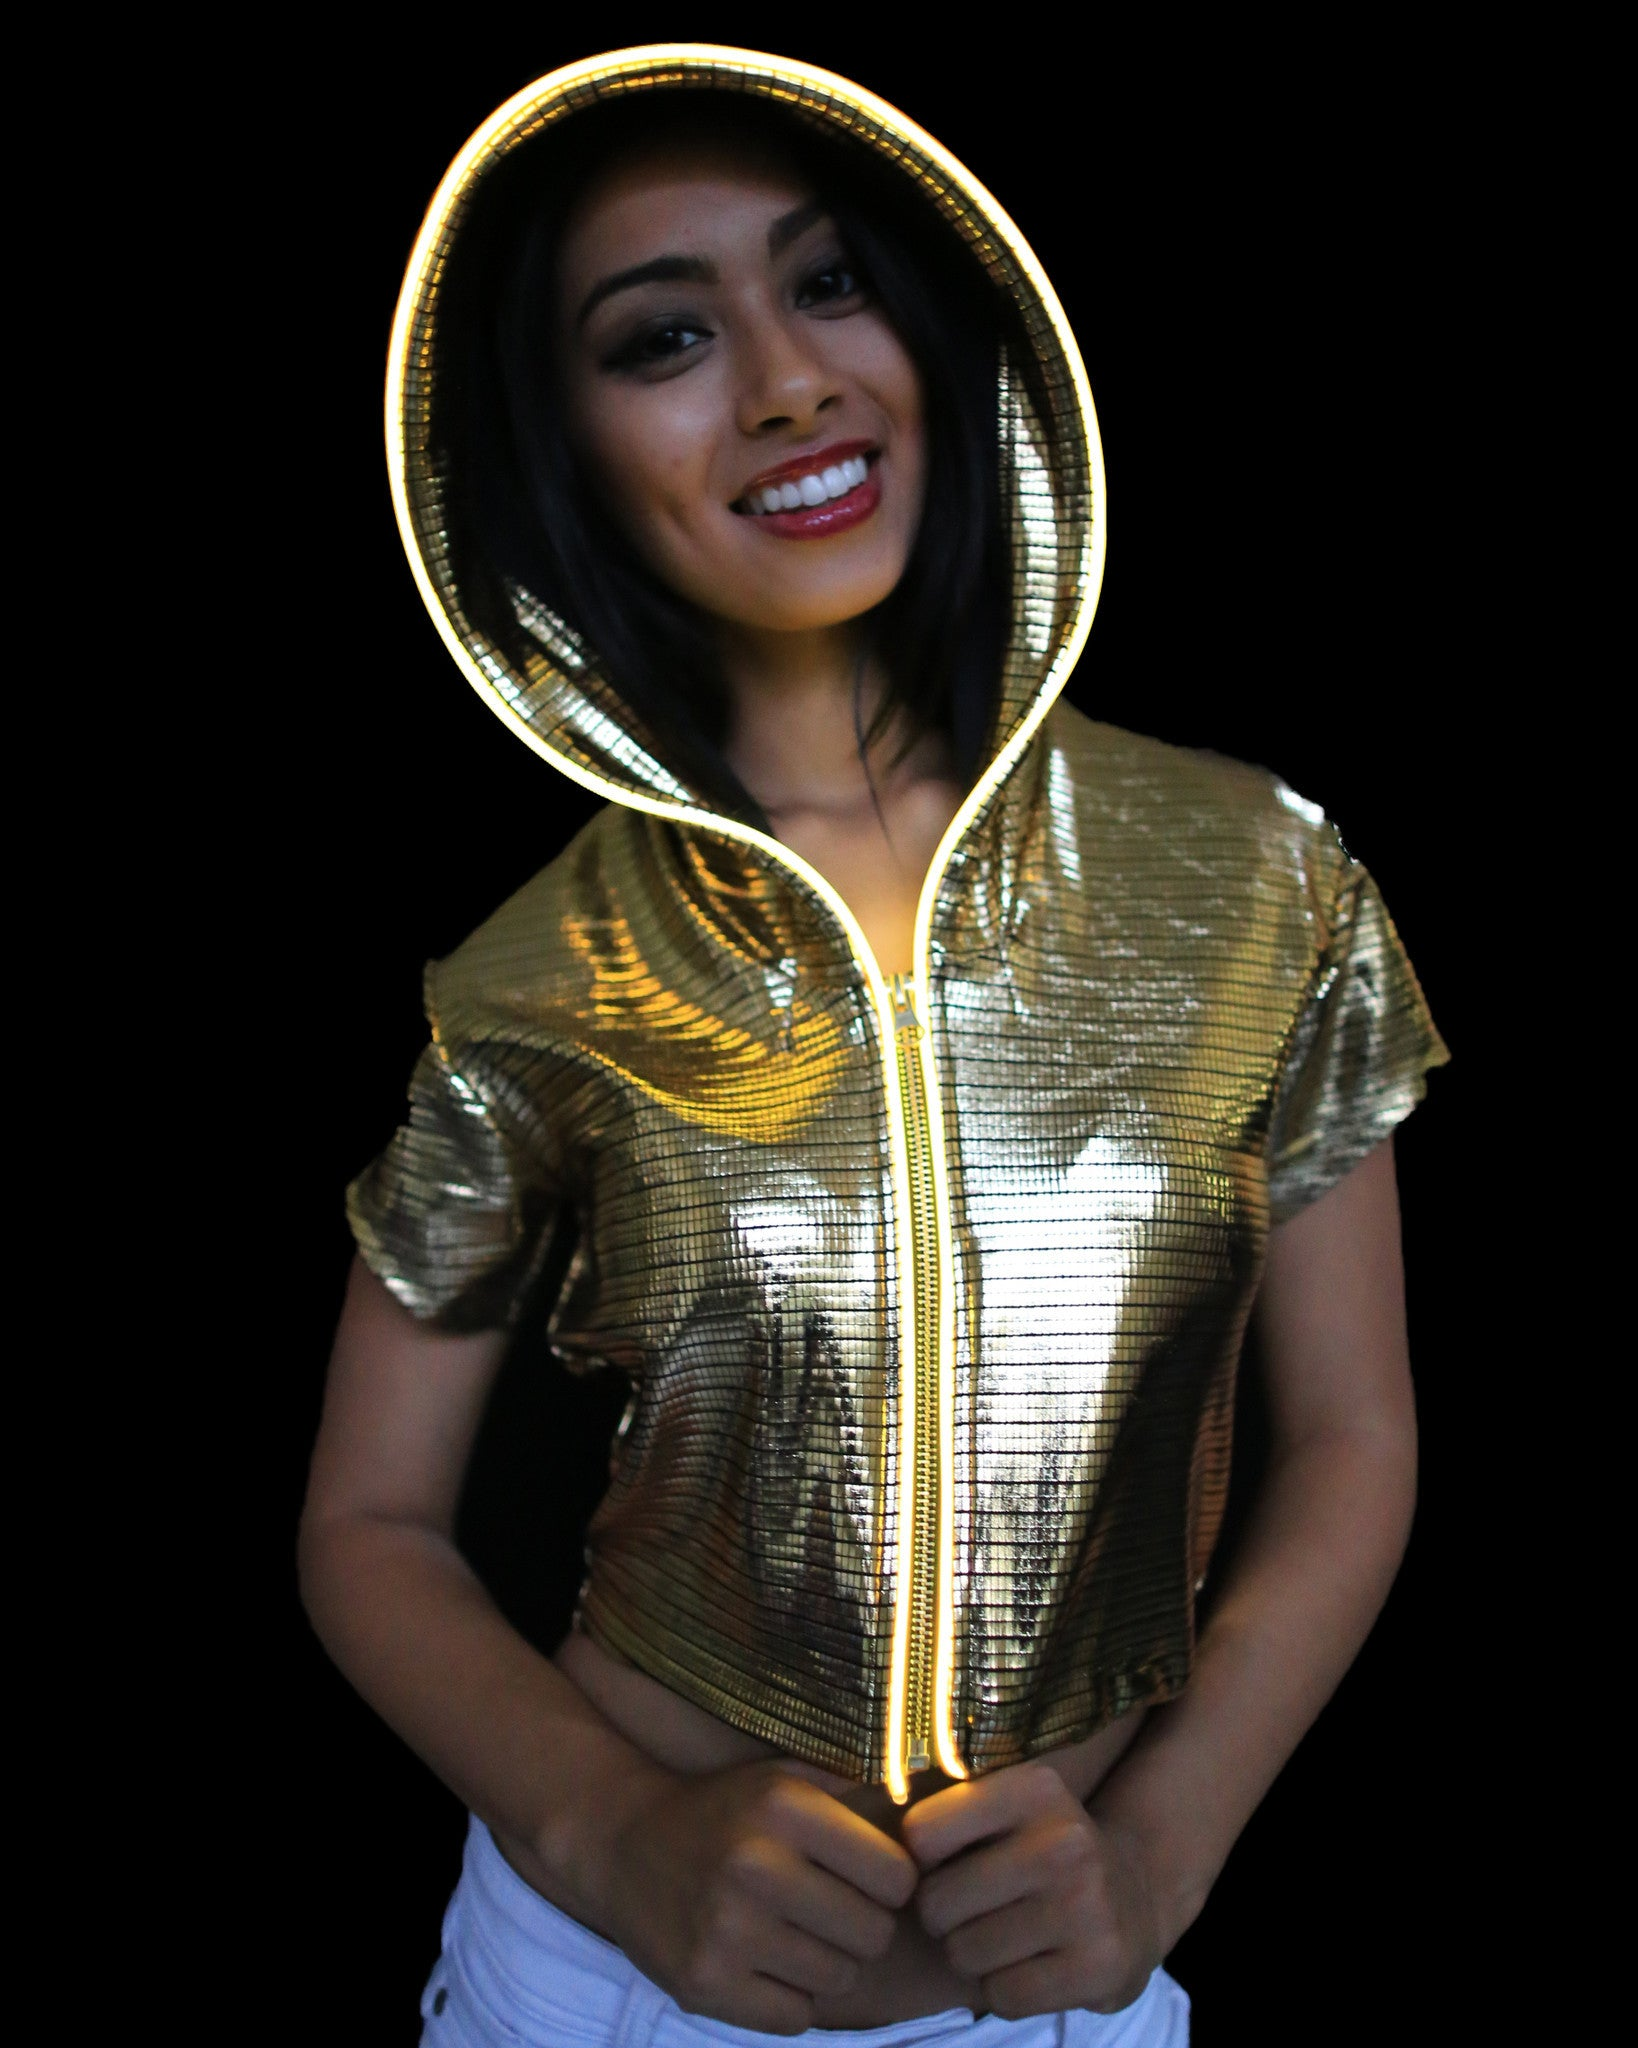 Light Up Crop Top - Electro - Electric Styles | World's Number 1 Light Up Shoe Store - {product_type}} - Gold / Large - 4